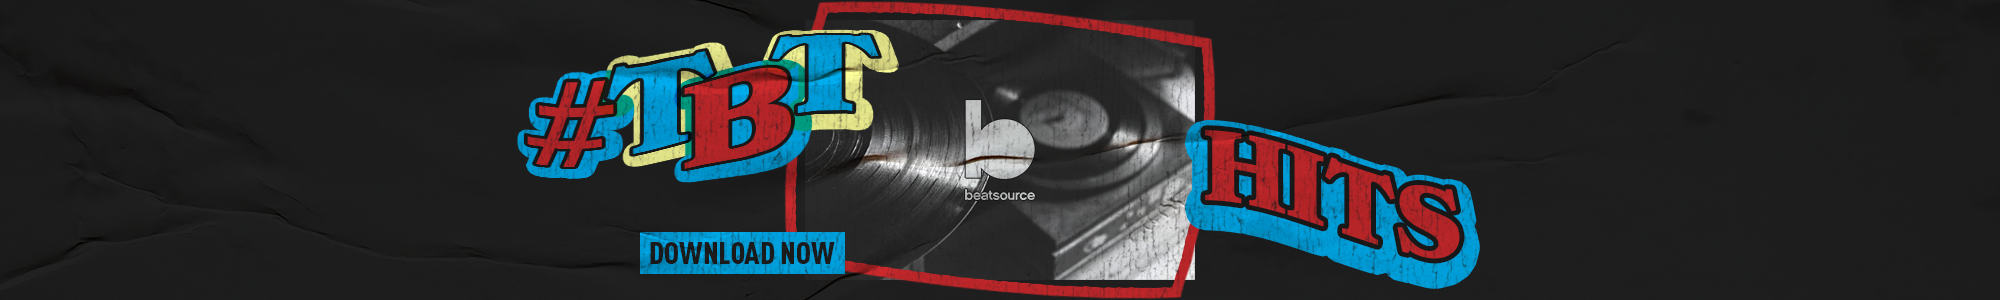 Beatsource's TBT Hits for Jan. 16